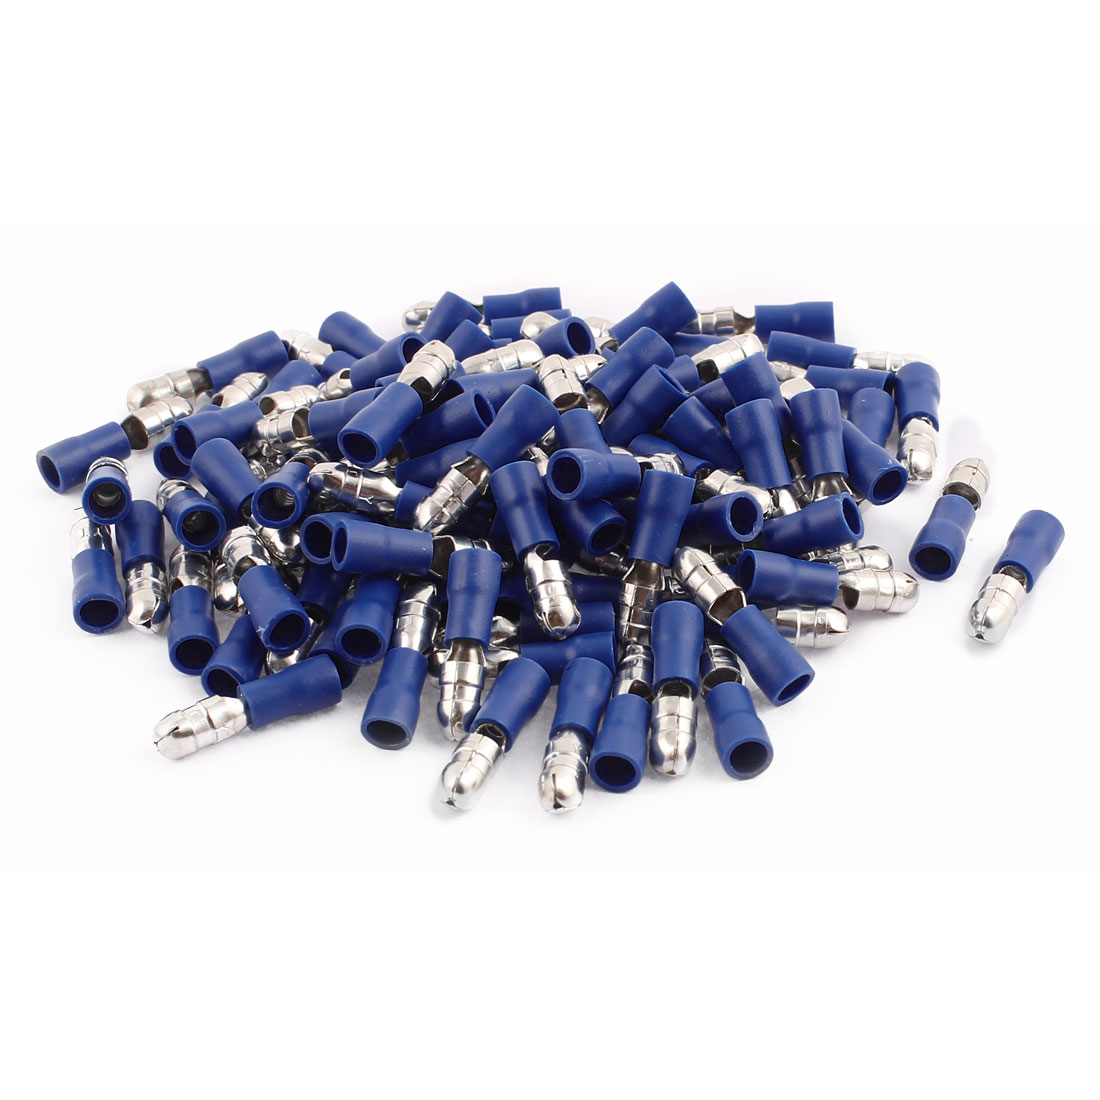 100Pcs MPD2-195 16-14 AWG Wire Insulated Male Terminal Connector